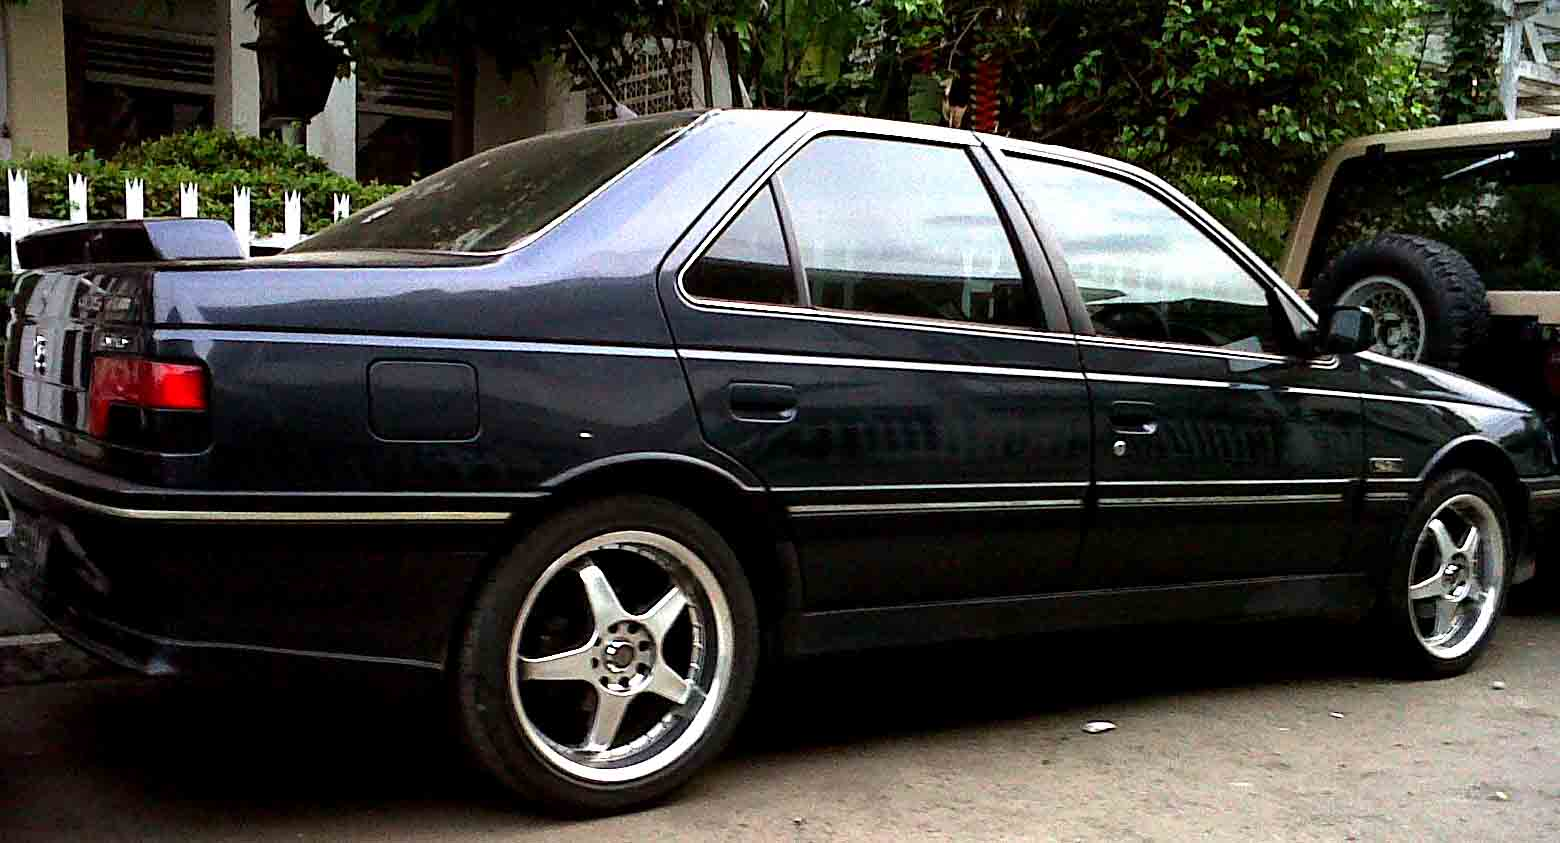 peugeot 405 is research peugeot 405 models find peugeot 405 sale ...